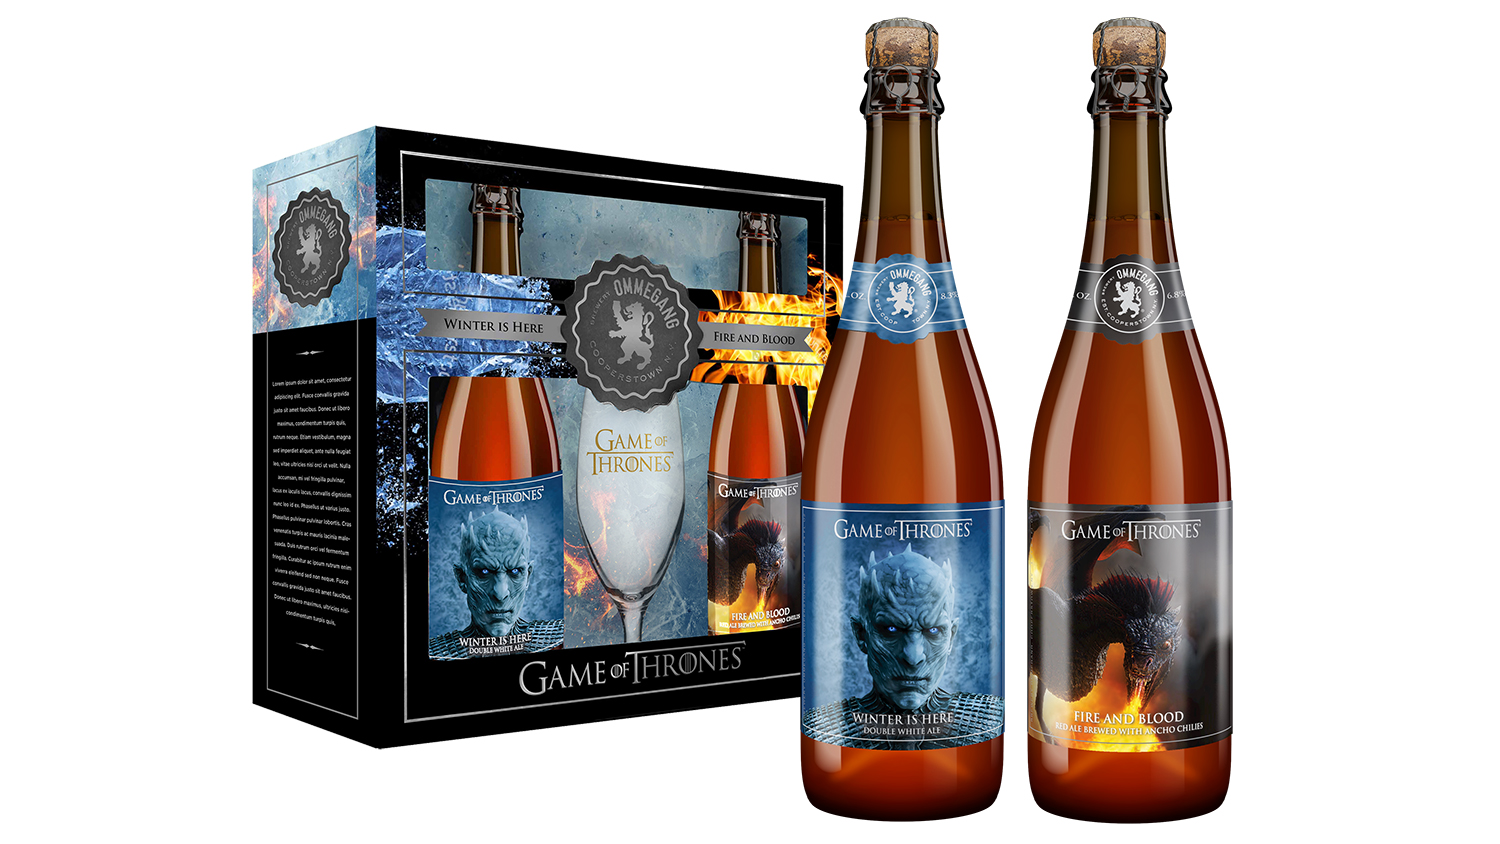 Winter is Here Game of Thrones new beer